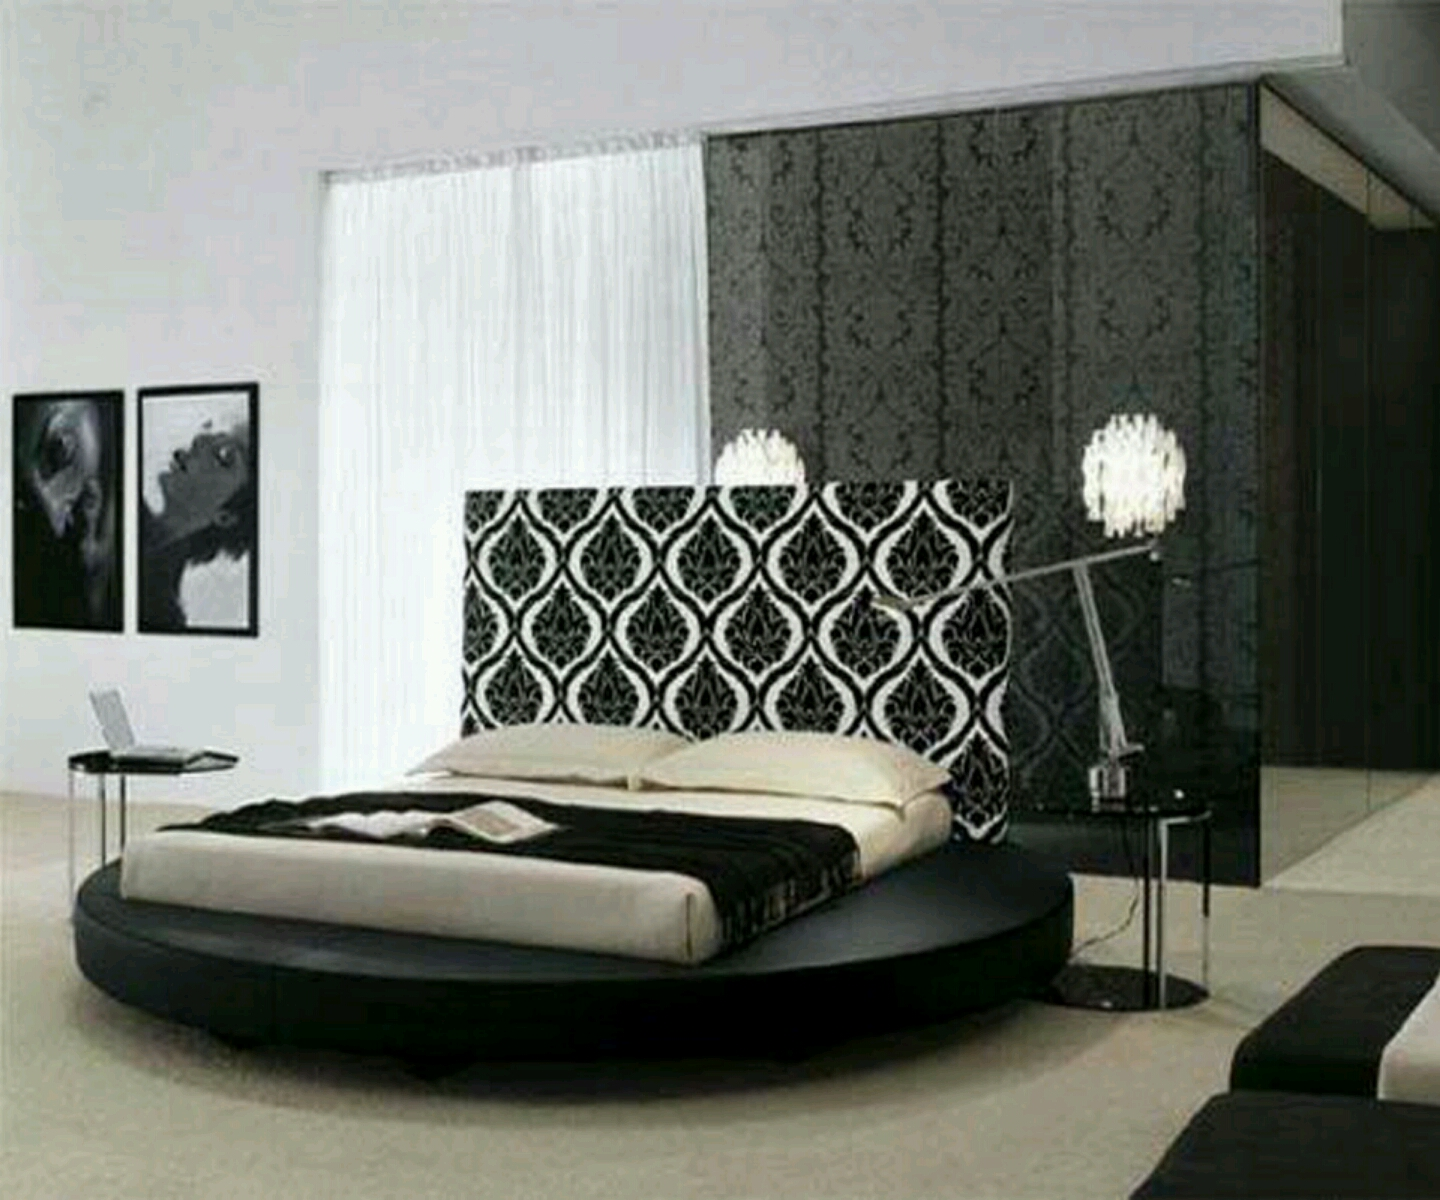 Modern Furniture Modern bed designs beautiful bedrooms  : Modernbeddesignsbeautifulbedroomsdesignsideas from blogsmodernfurniture.blogspot.com size 1440 x 1200 jpeg 963kB